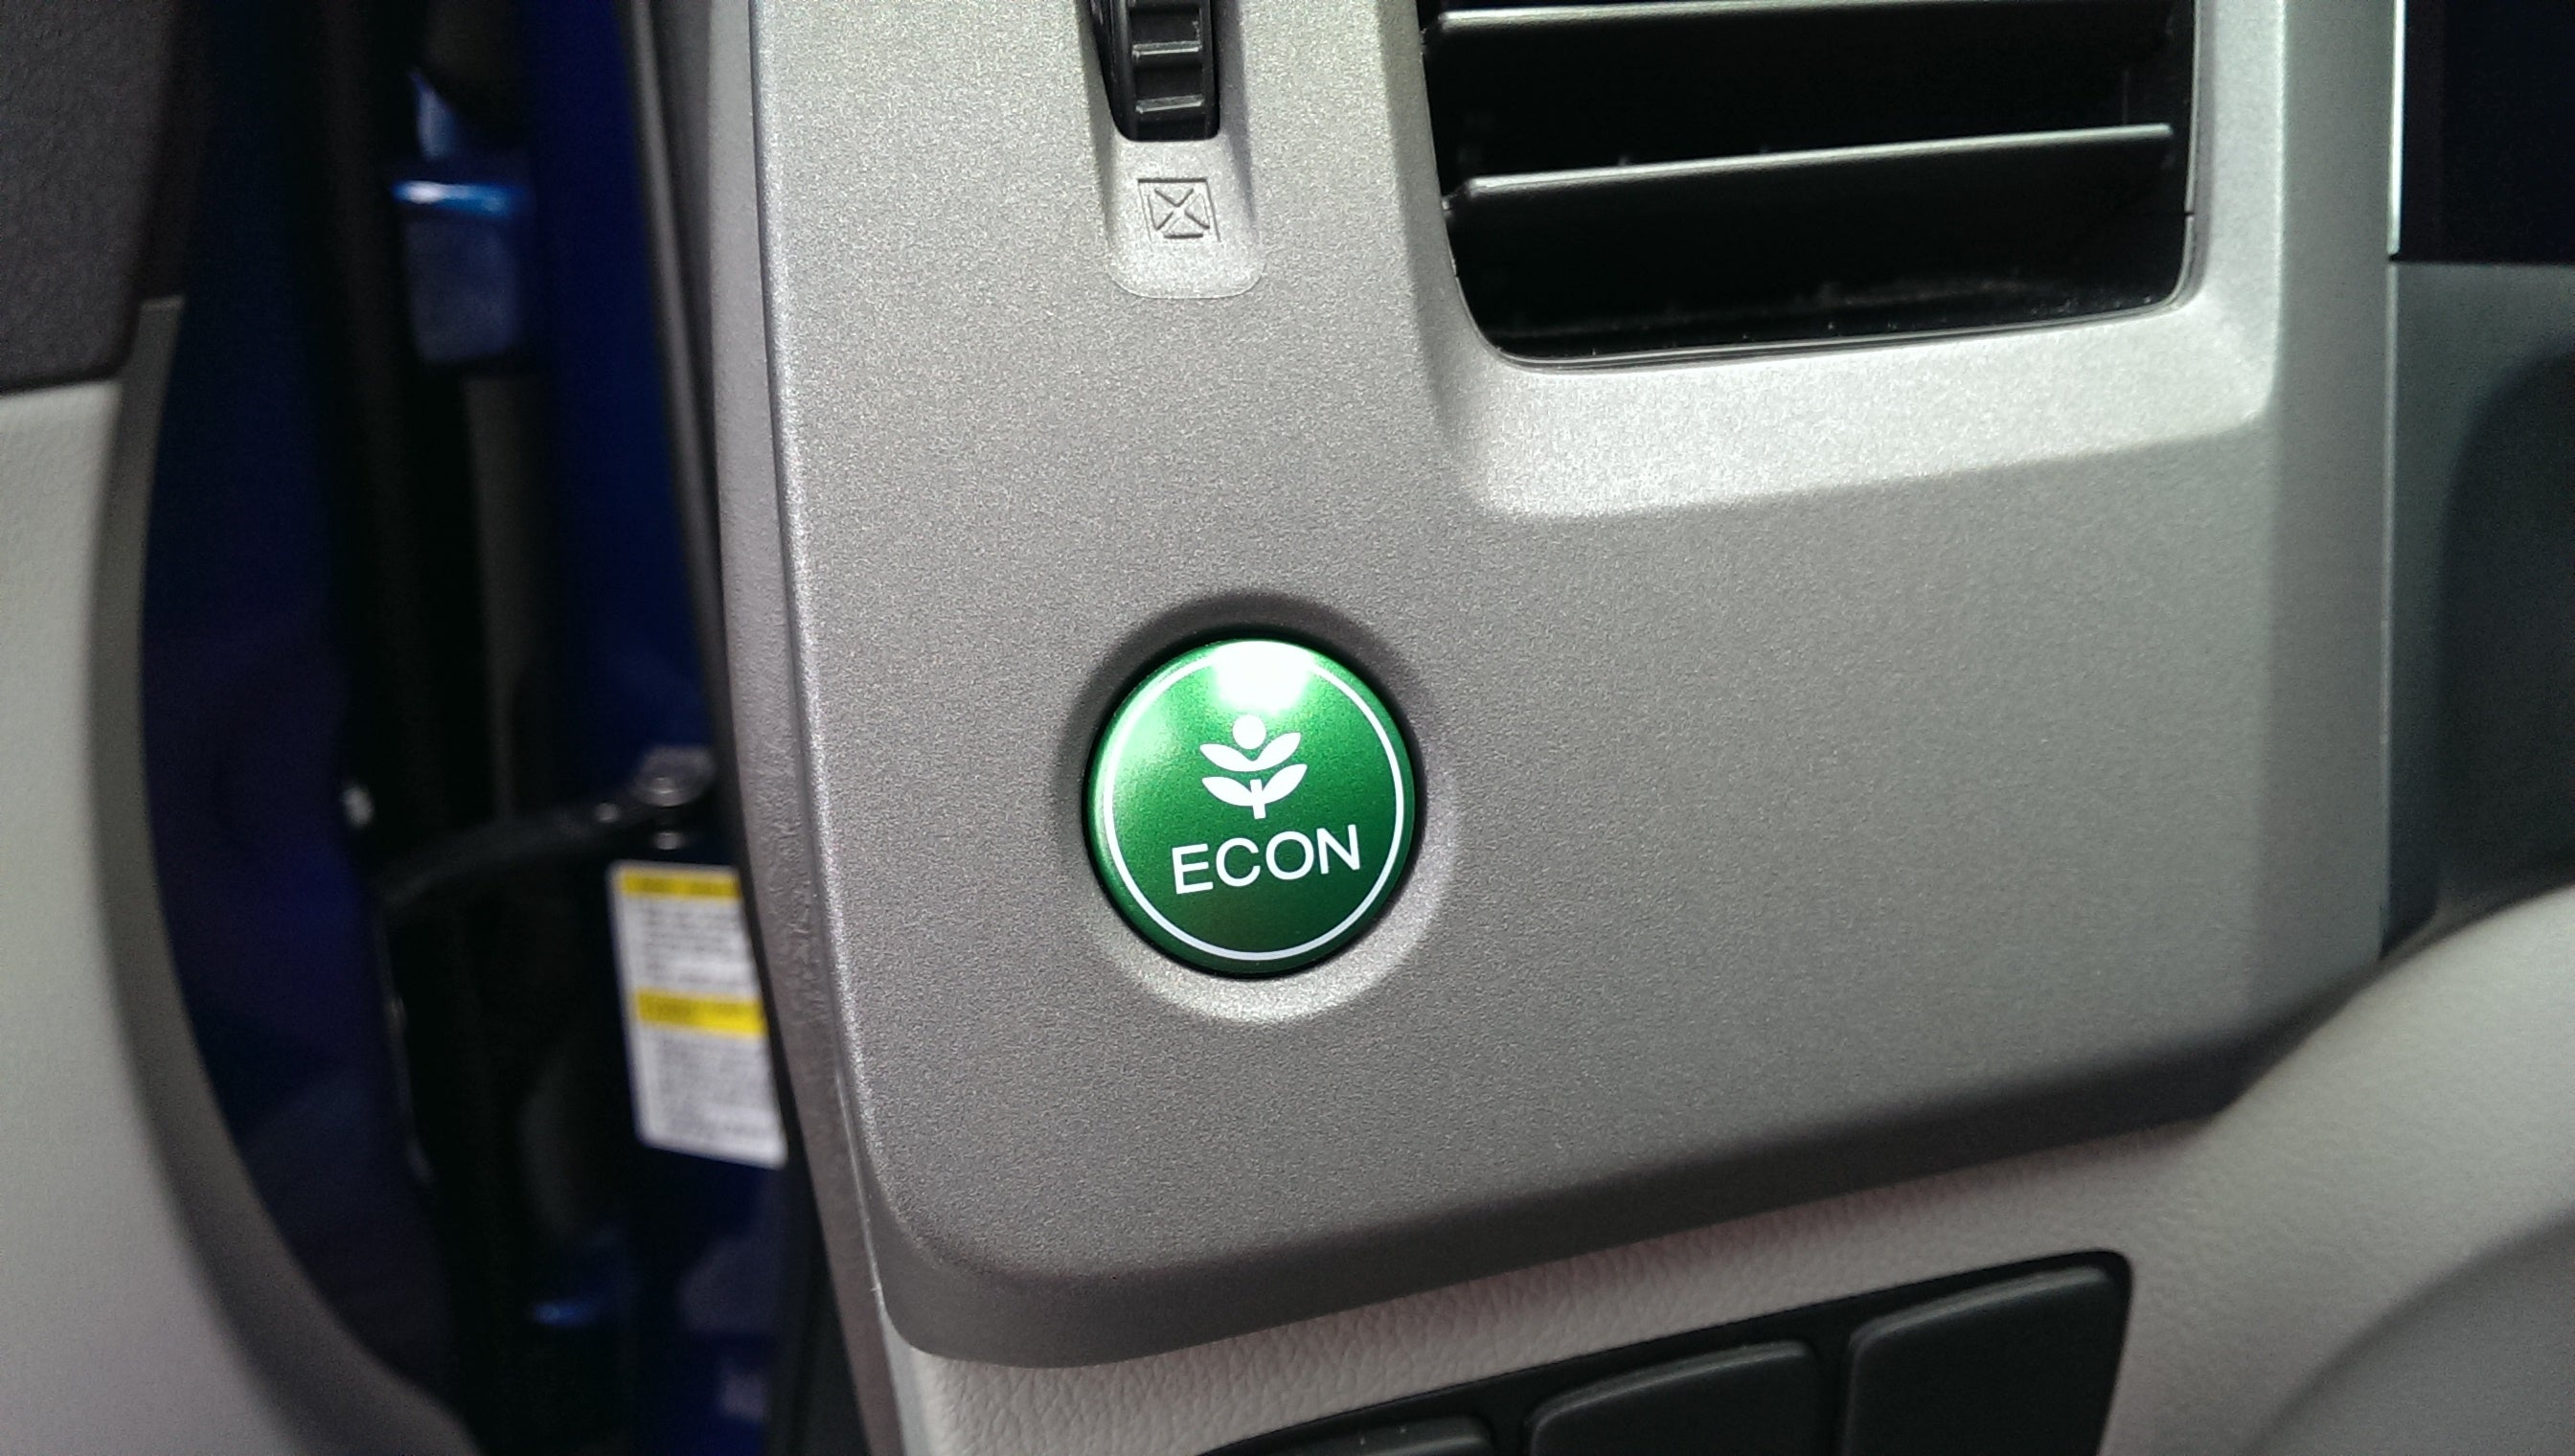 Breaking This Honda Civic has an Econ Button